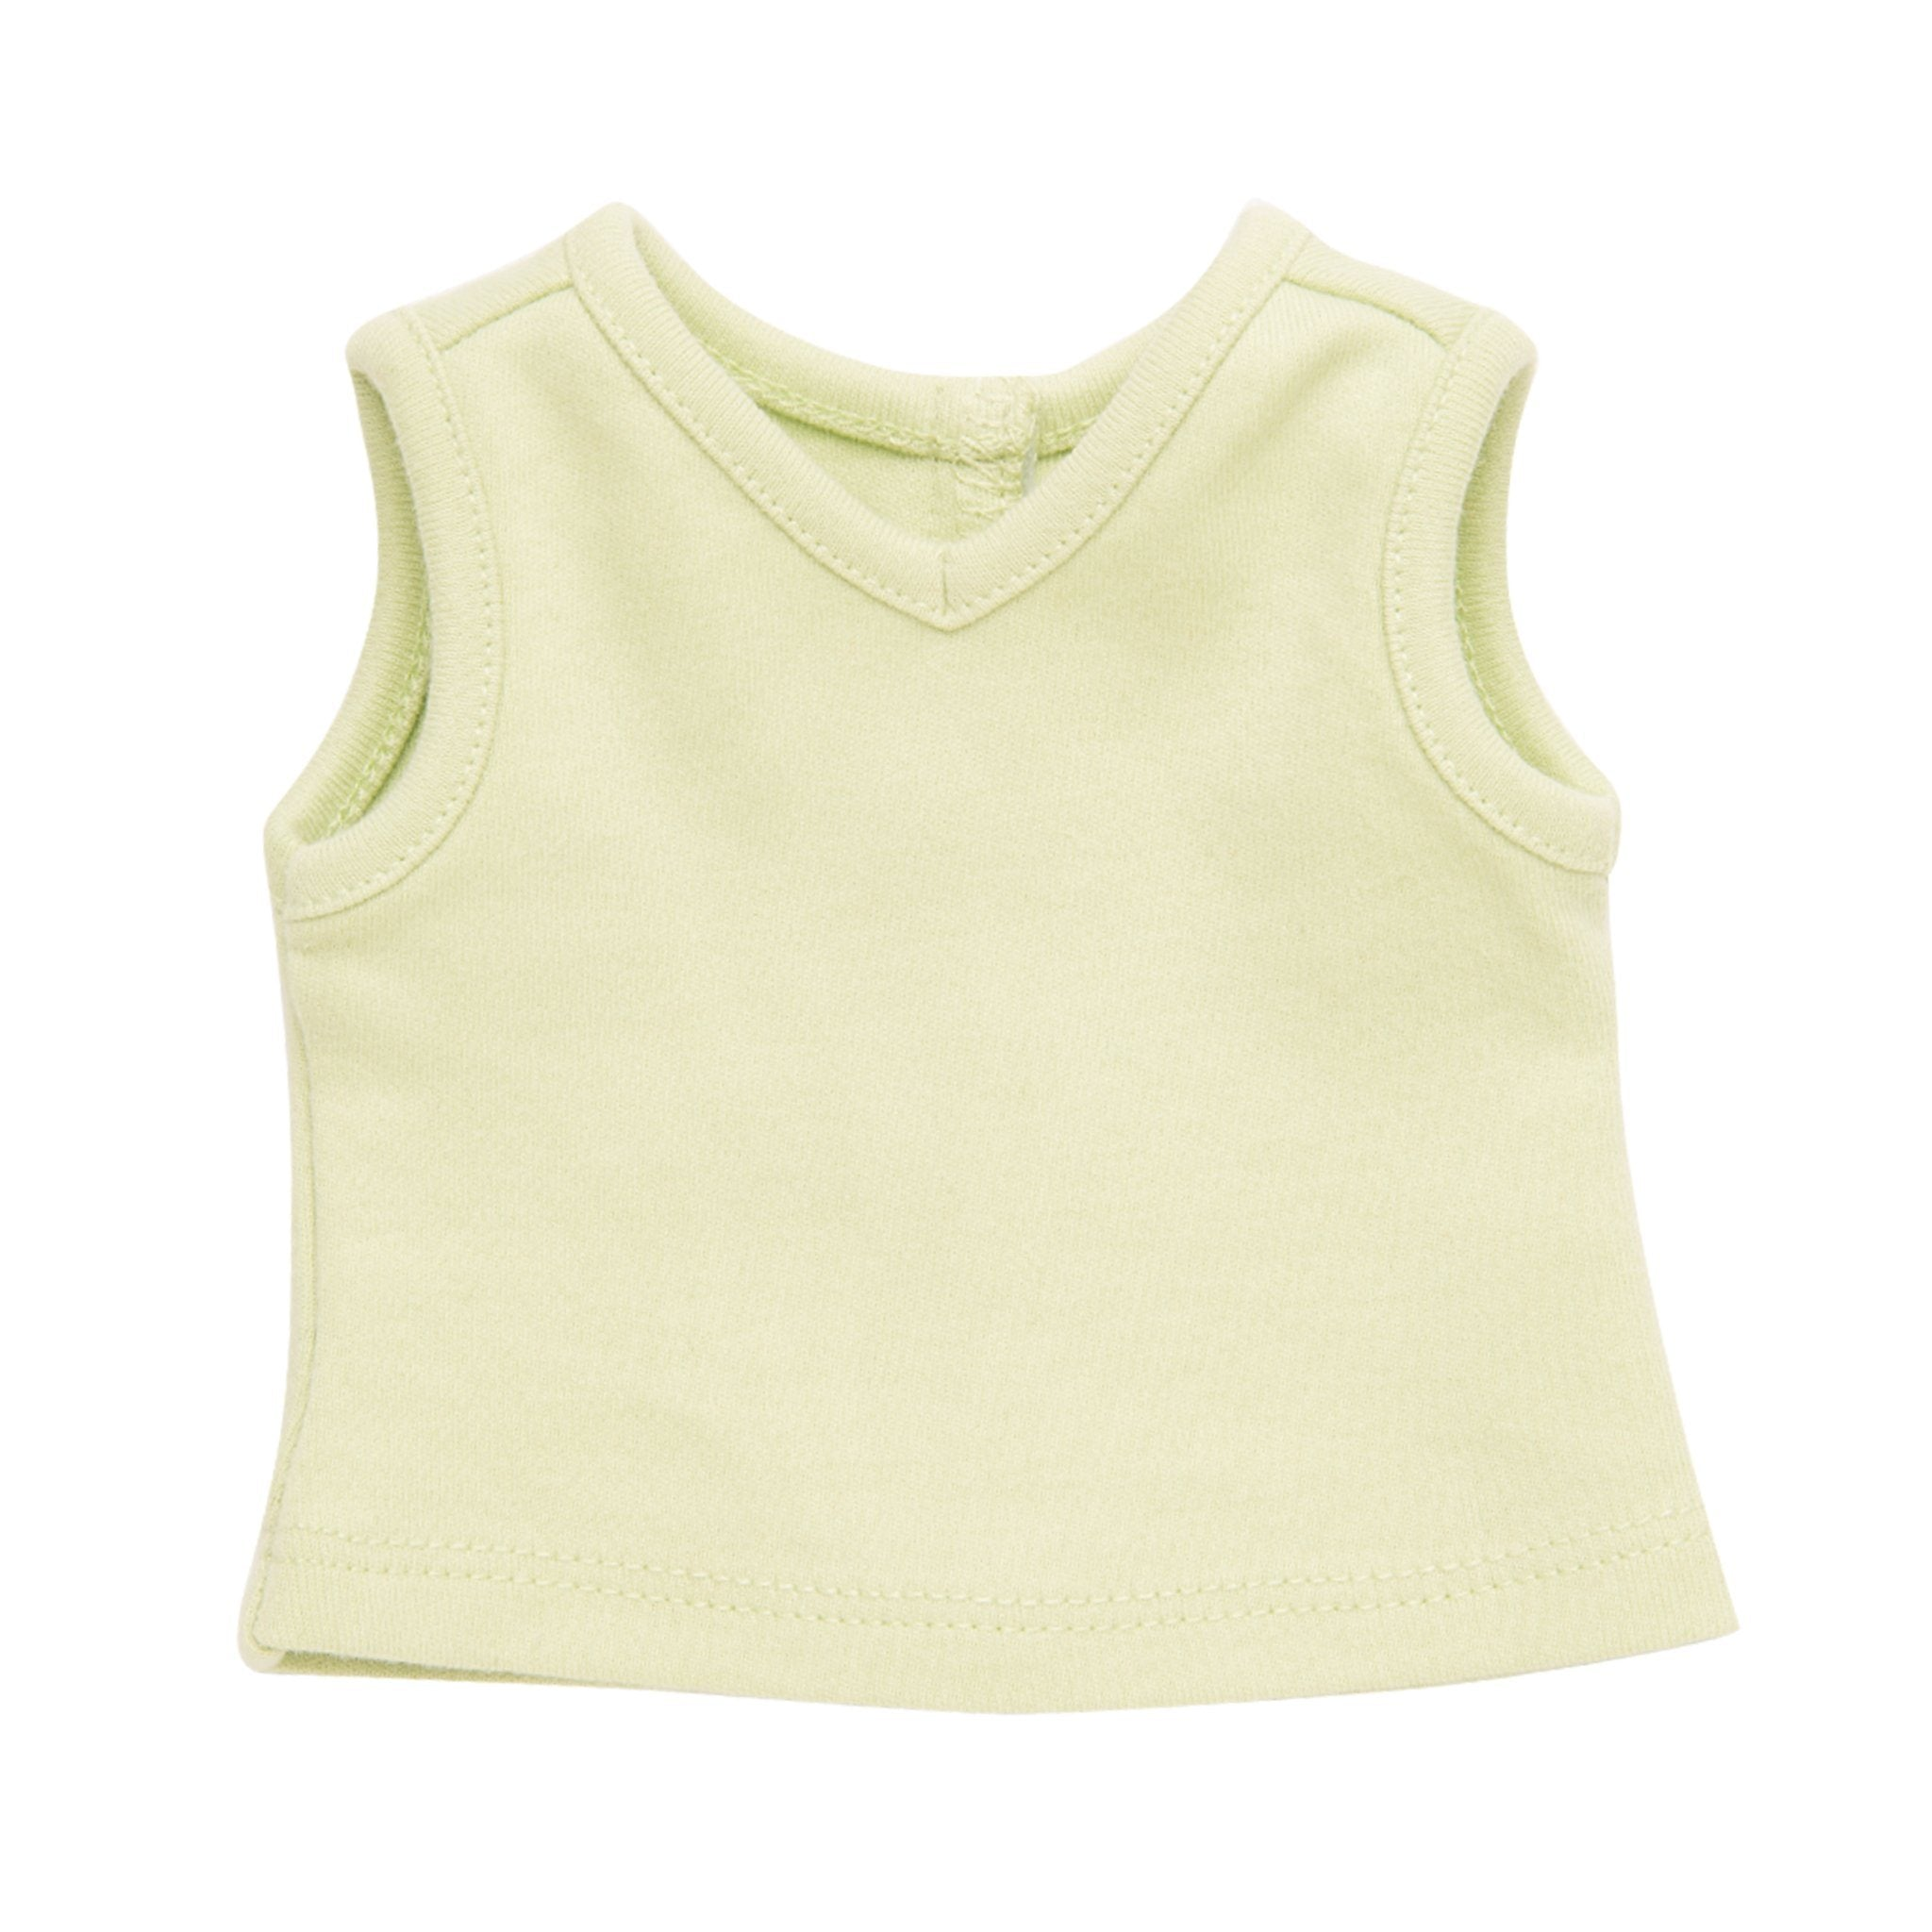 Campus Collection light green sleeveless tee s fits all 18 inch dolls.